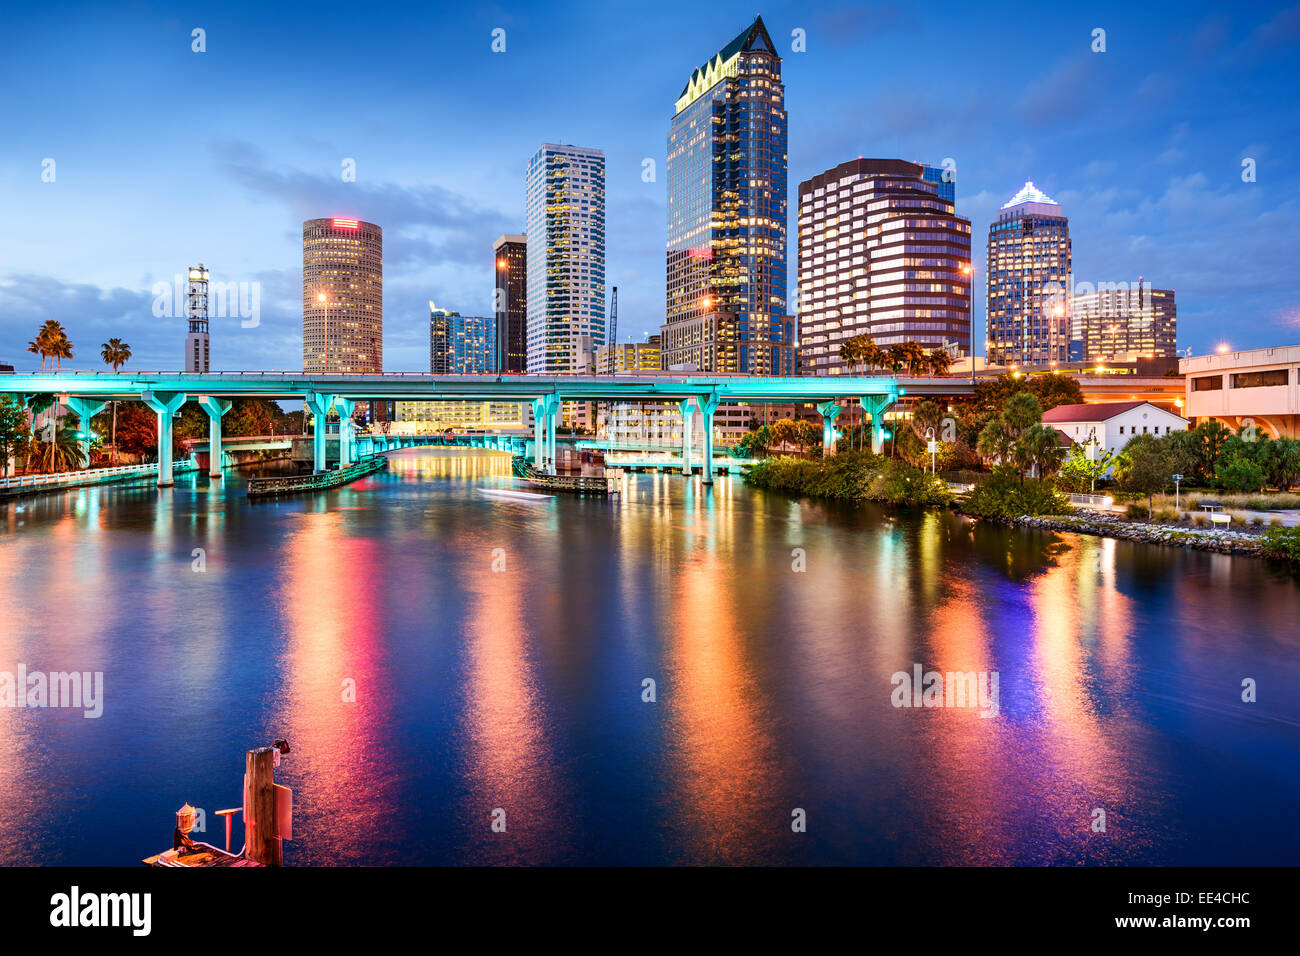 Tampa, Florida, USA downtown city skyline over the Hillsborough River. - Stock Image